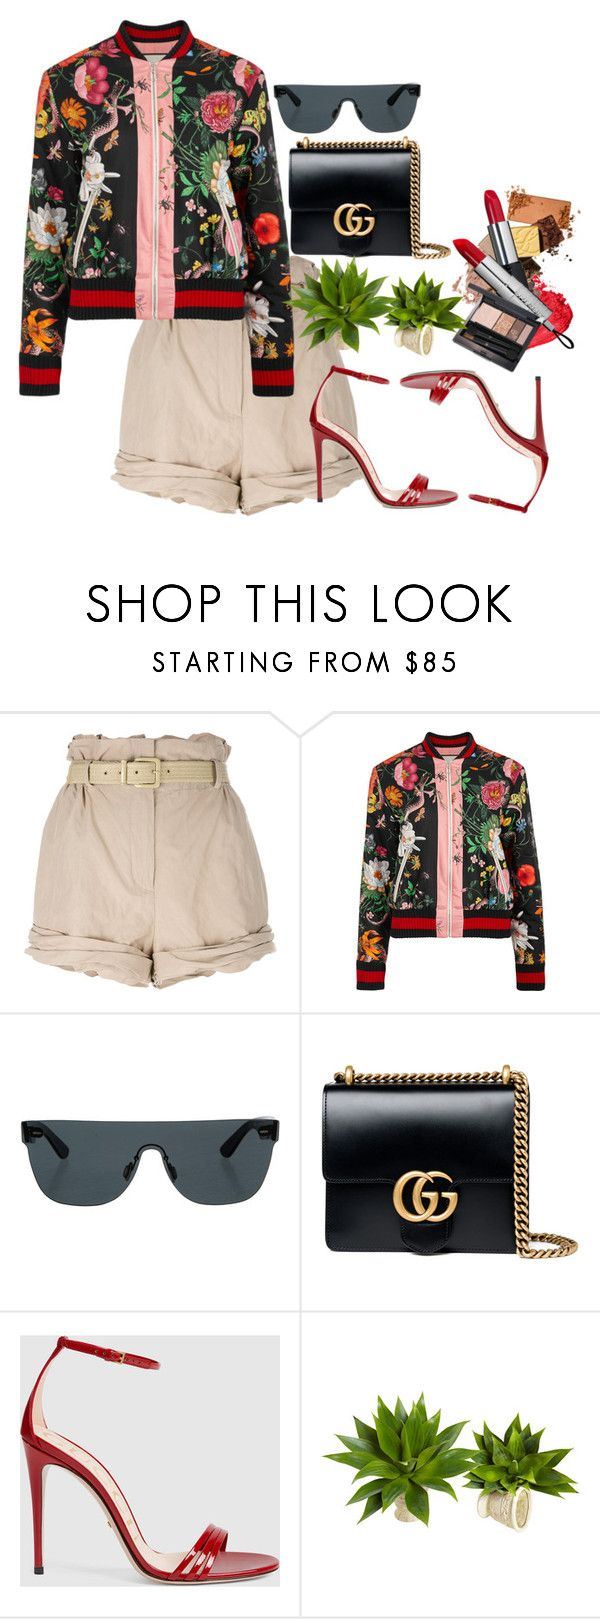 """""""I'm Gucci"""" by fashion-is-my-passion-14 on Polyvore featuring Moschino, Gucci and RetroSuperFuture"""